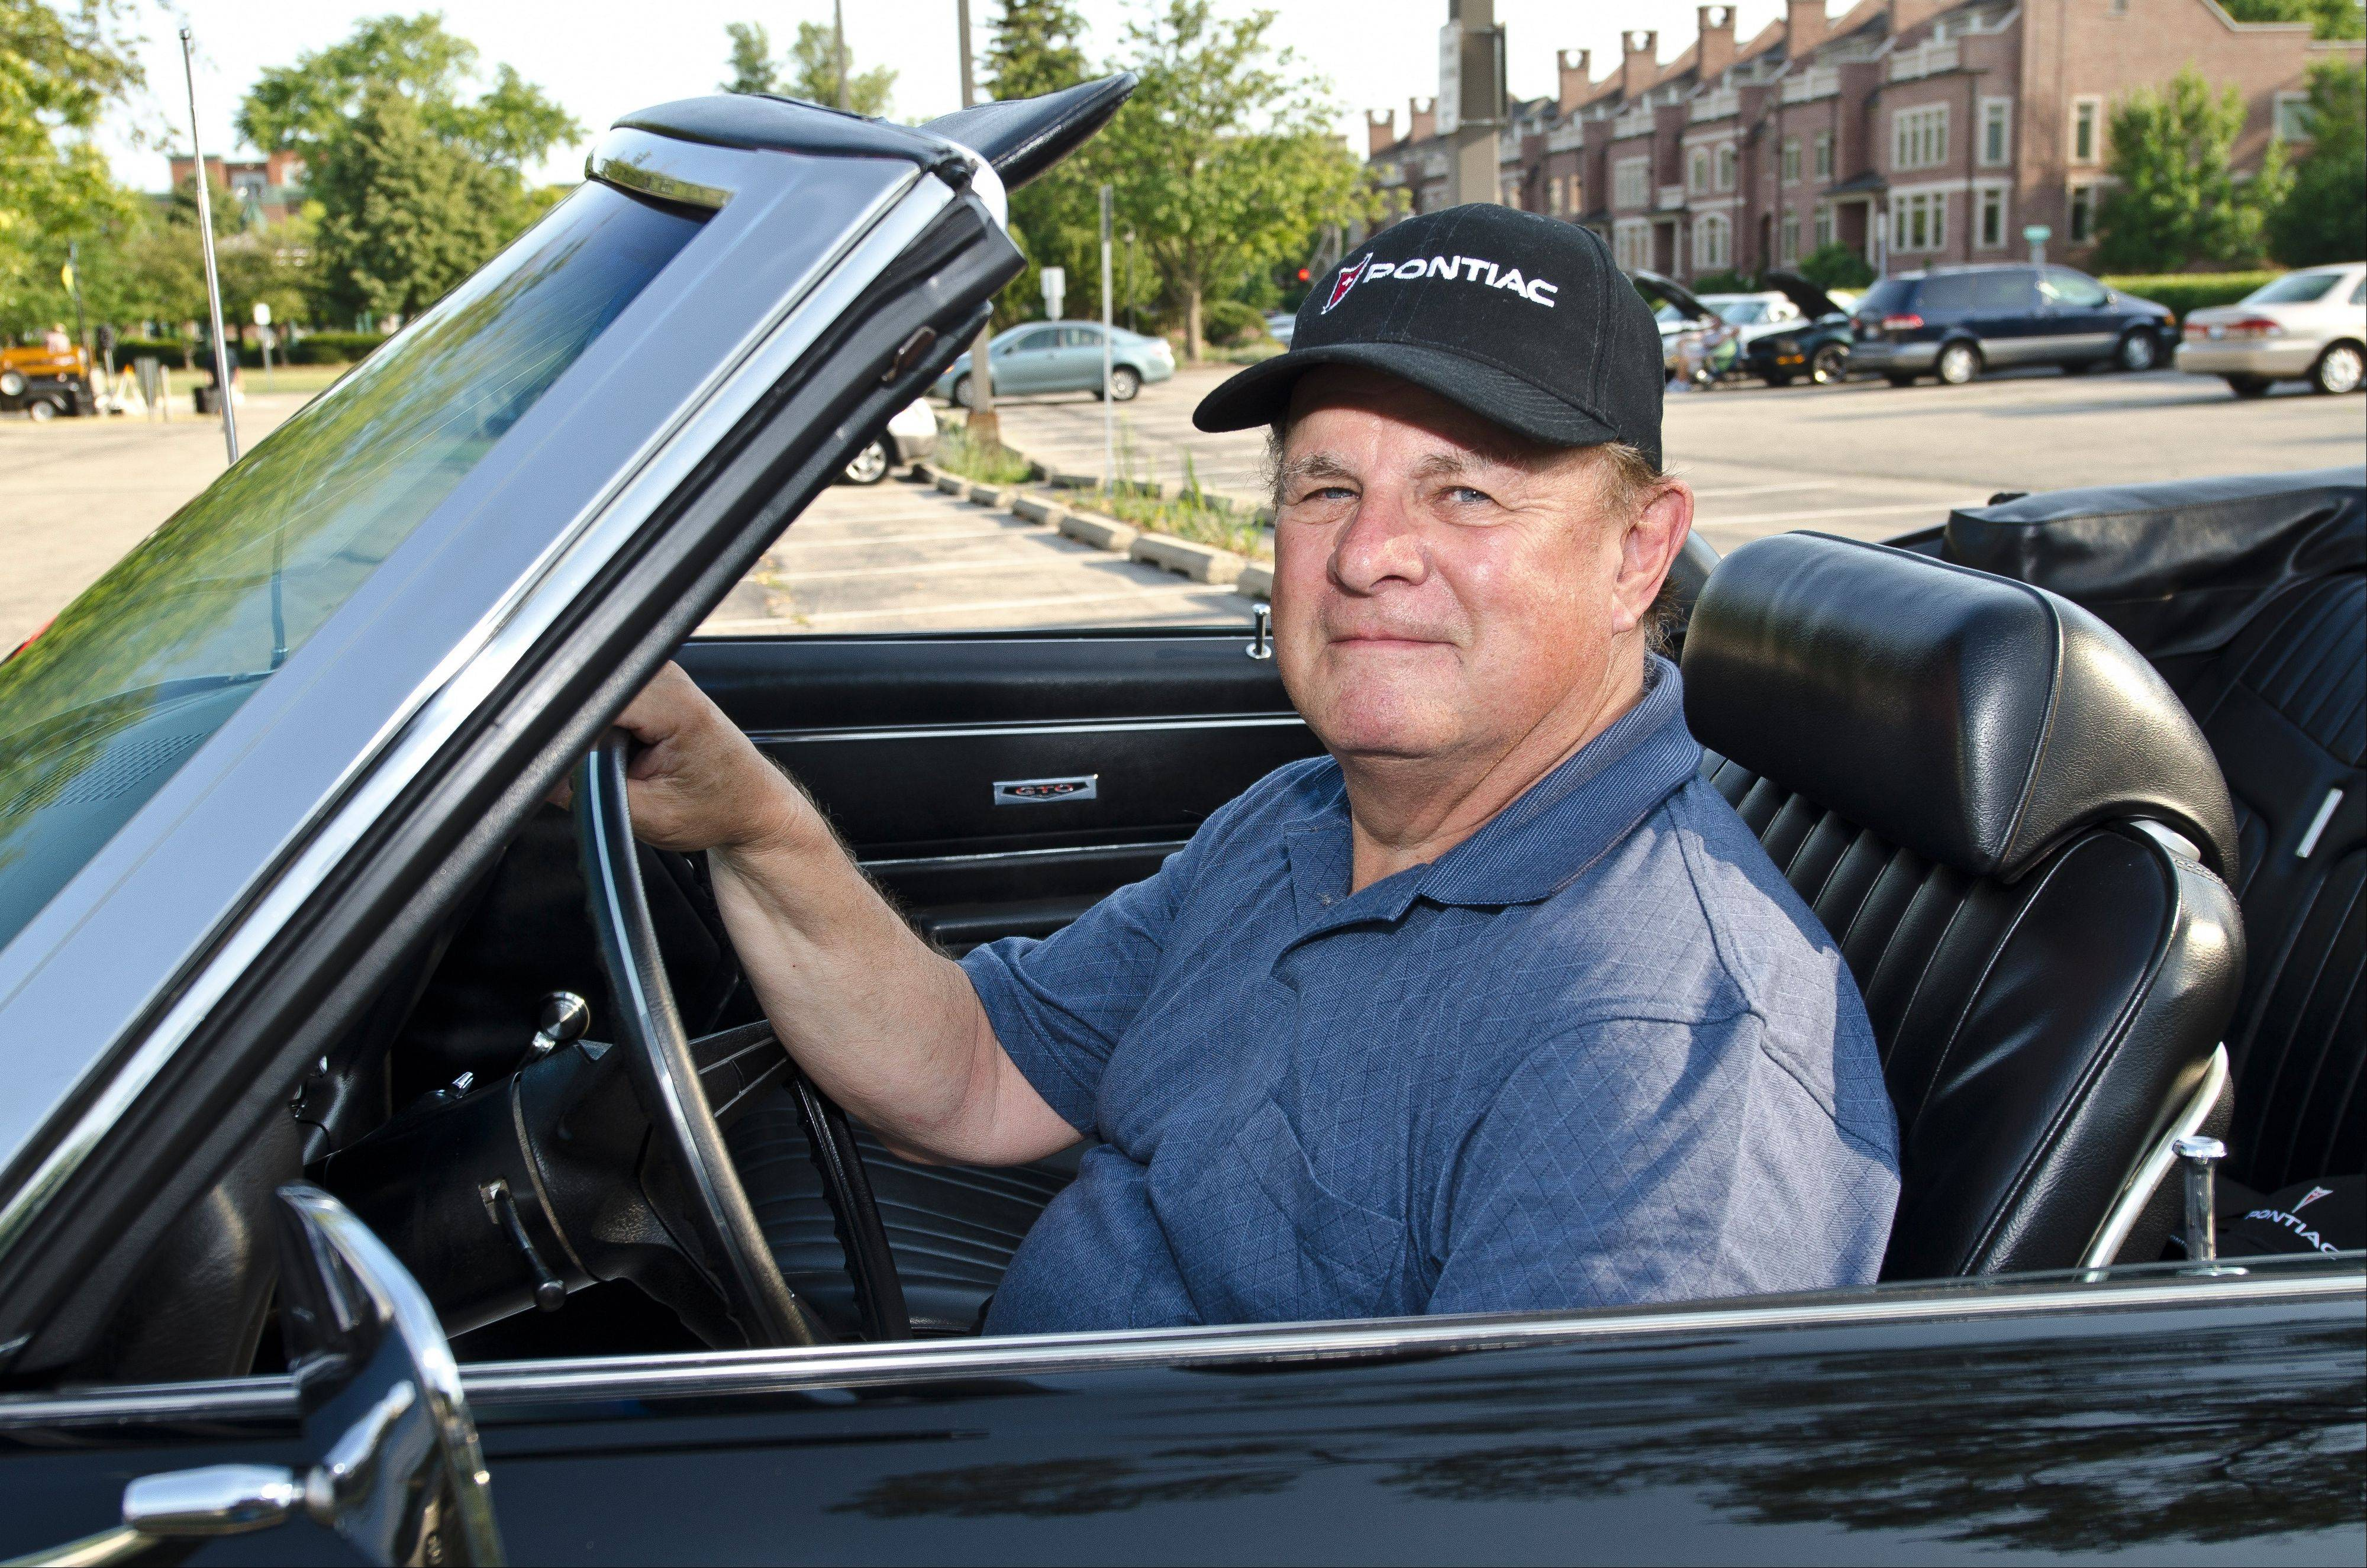 Jerry Bertram of Palatine prefers the drive of older automobiles to today's modern vehicles.